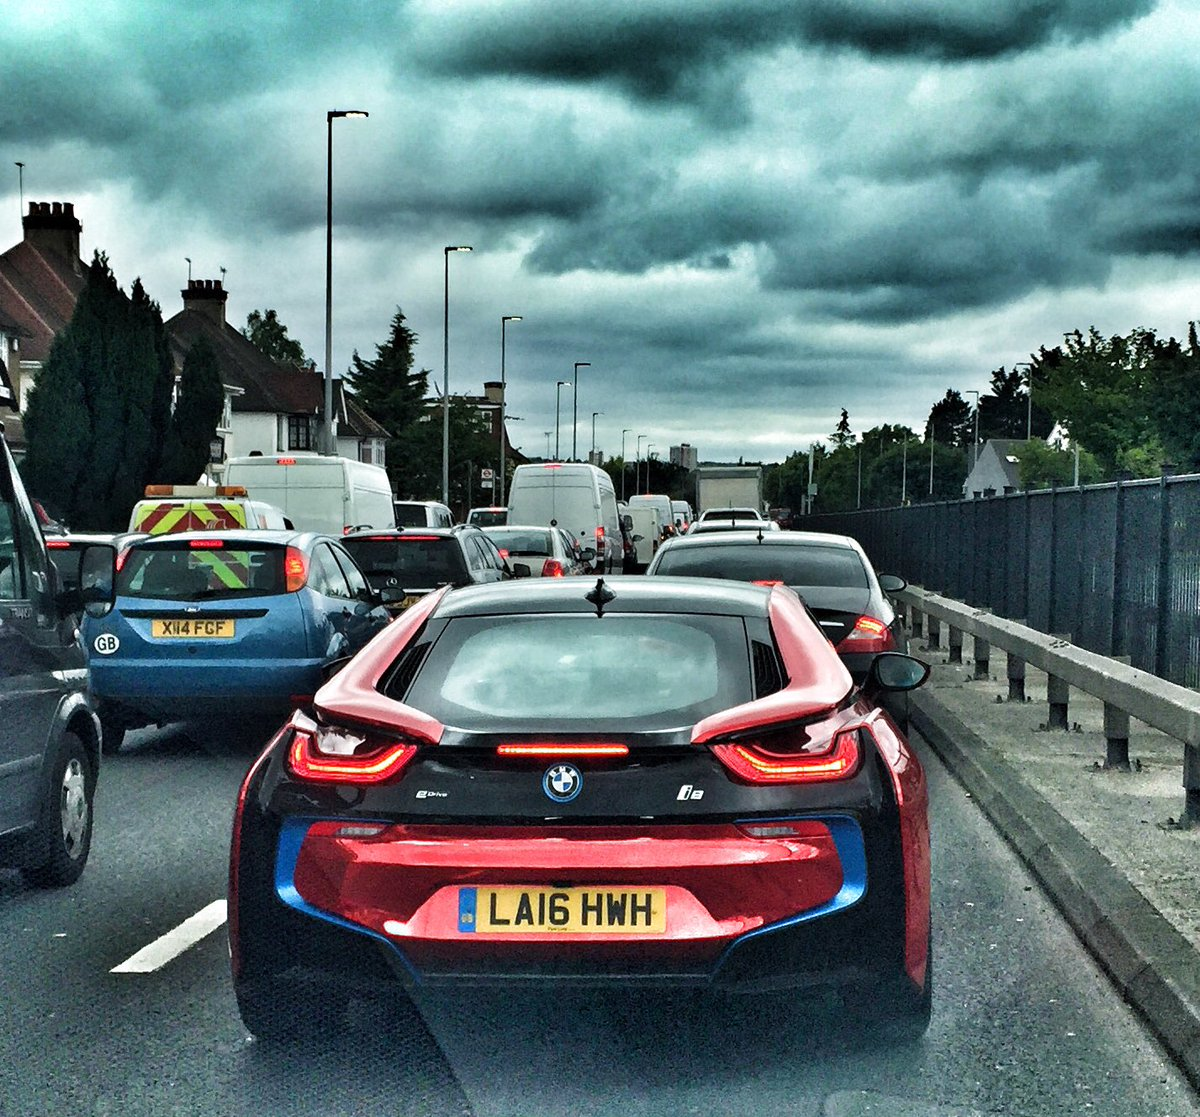 Tom Ford On Twitter Red Chrome Wrap On The Bmw I8 Personally I